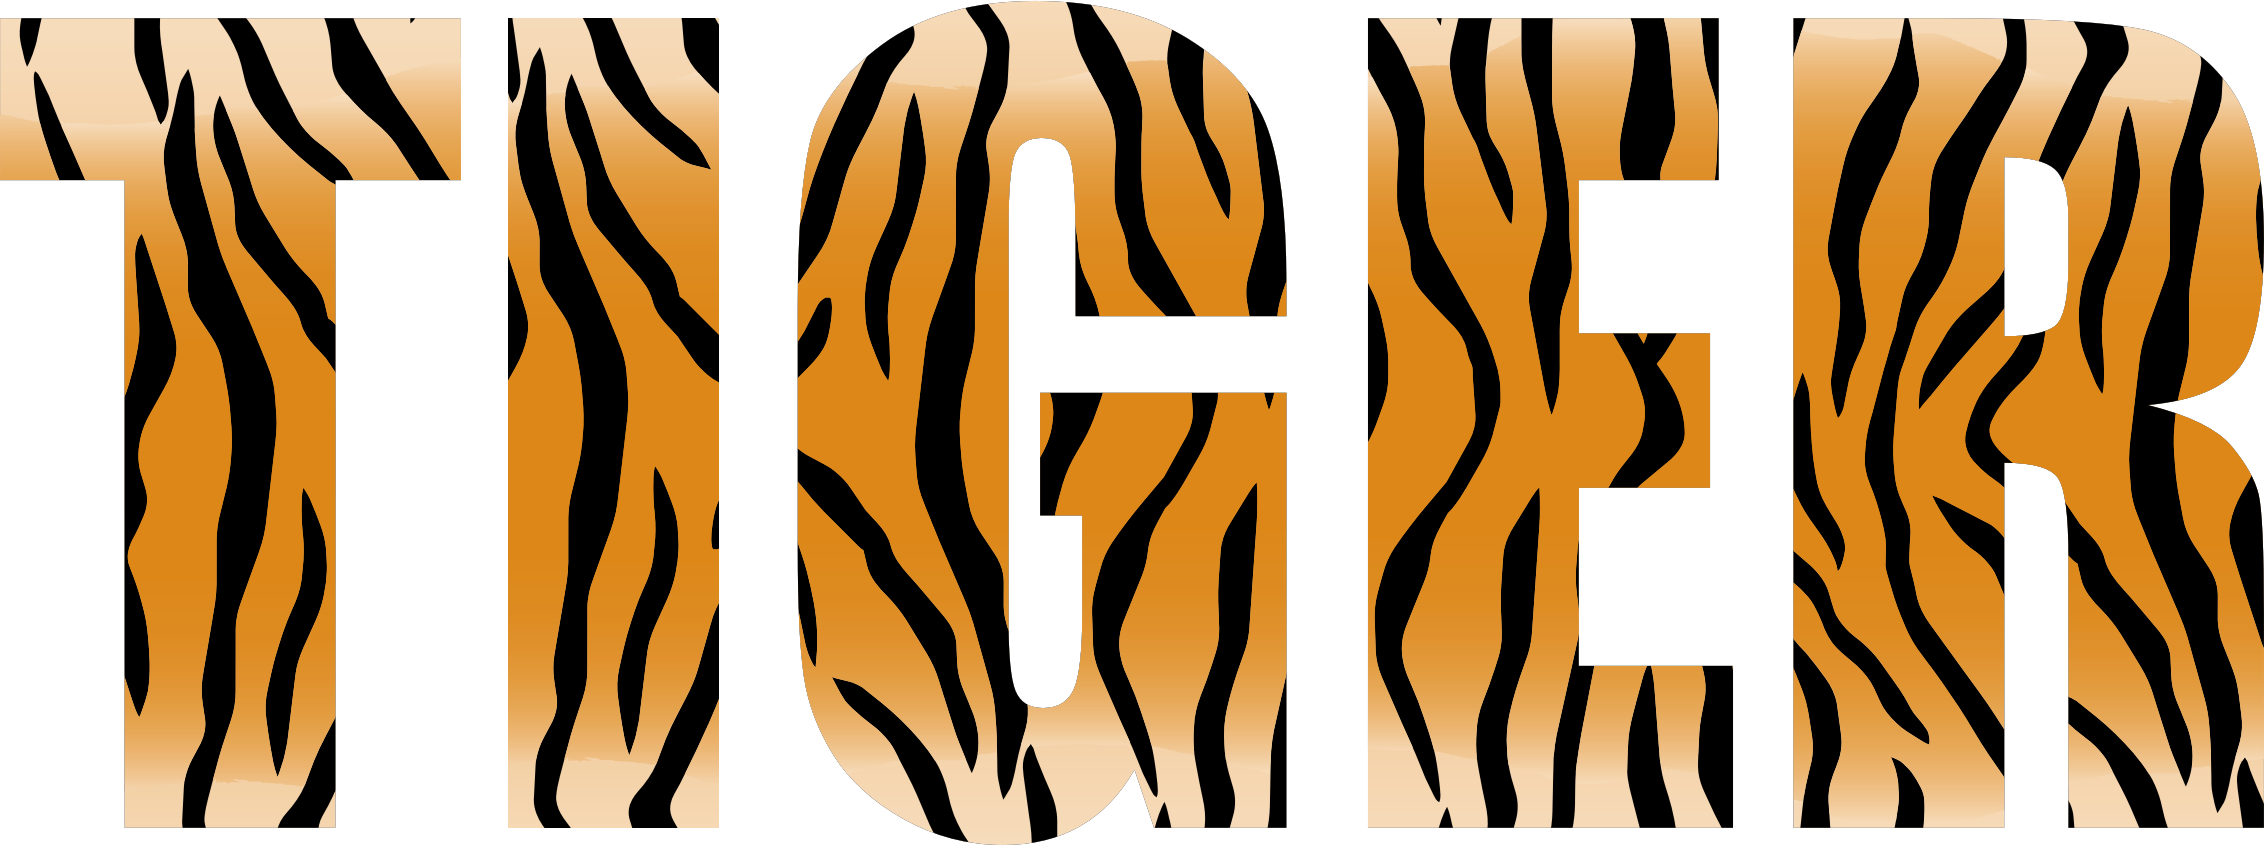 Typography big image png. Clipart tiger abstract